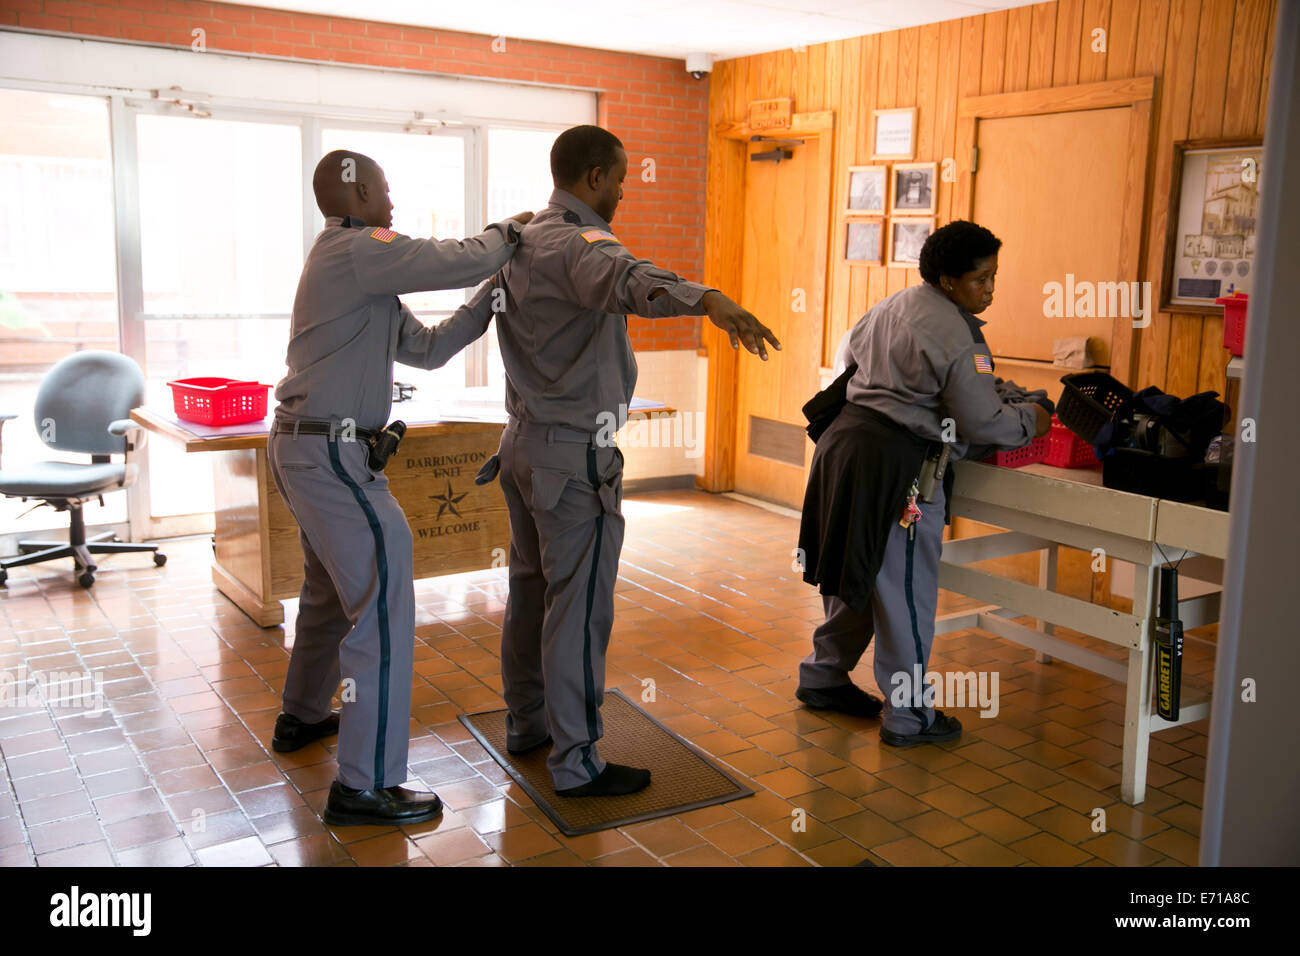 Security metal detector school - Prison Guards Go Through A Metal Detector And Are Hand Searched By Another Guard As Part